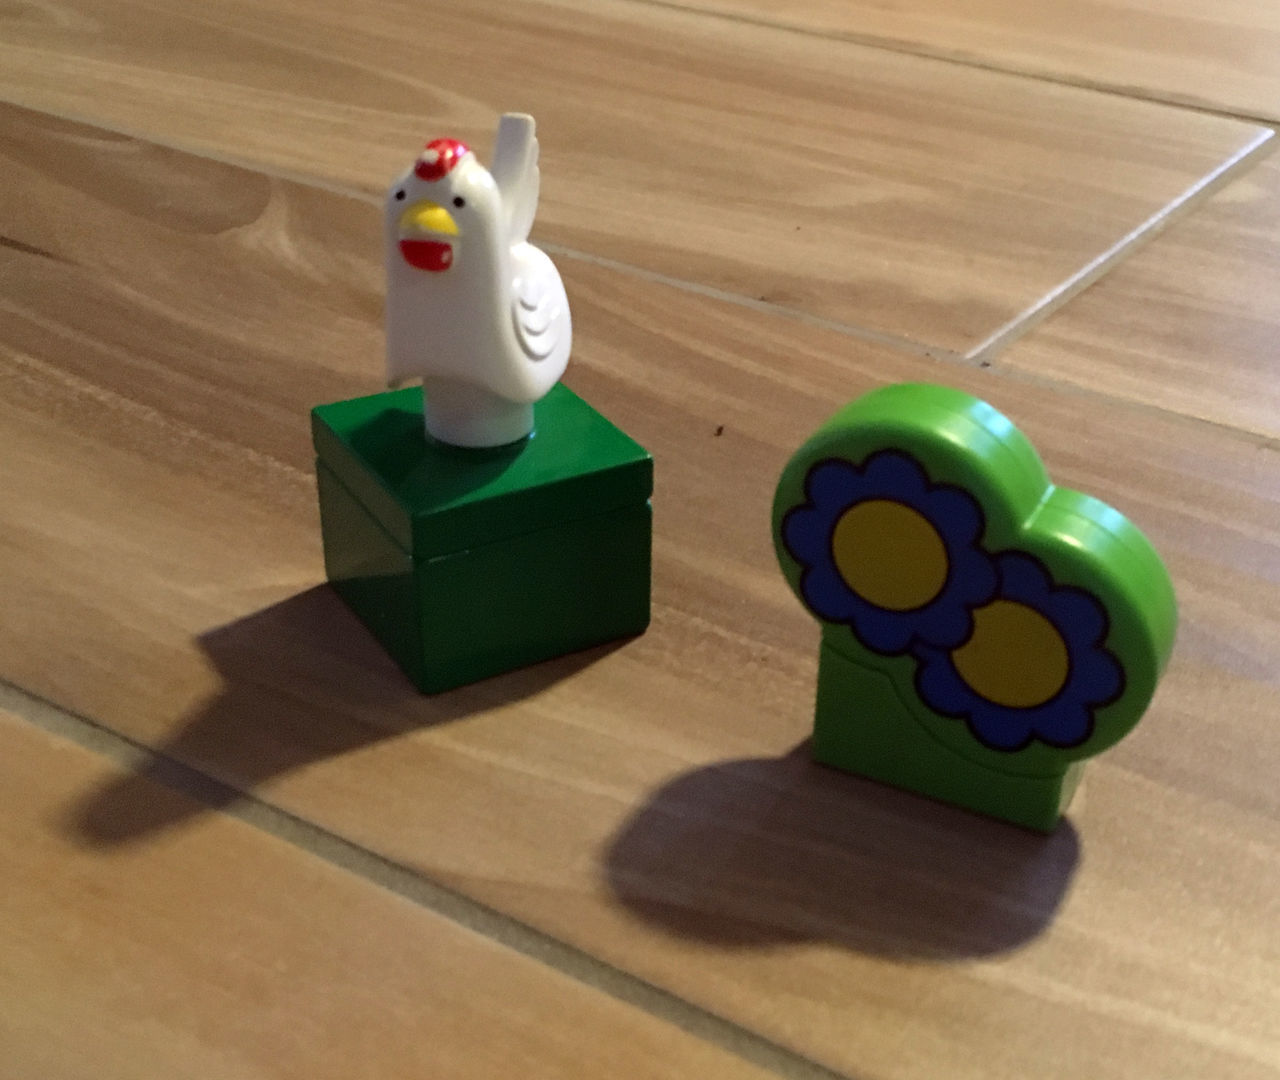 Wachhuhn Chicken Childhood Farm Flowers Hardwood Floor High Angle View Indoors  LEGO LEGO Animals Lego Duplo No People Plastic Wood Wood - Material Symbol Symbolbild Casting Shadows Shadows